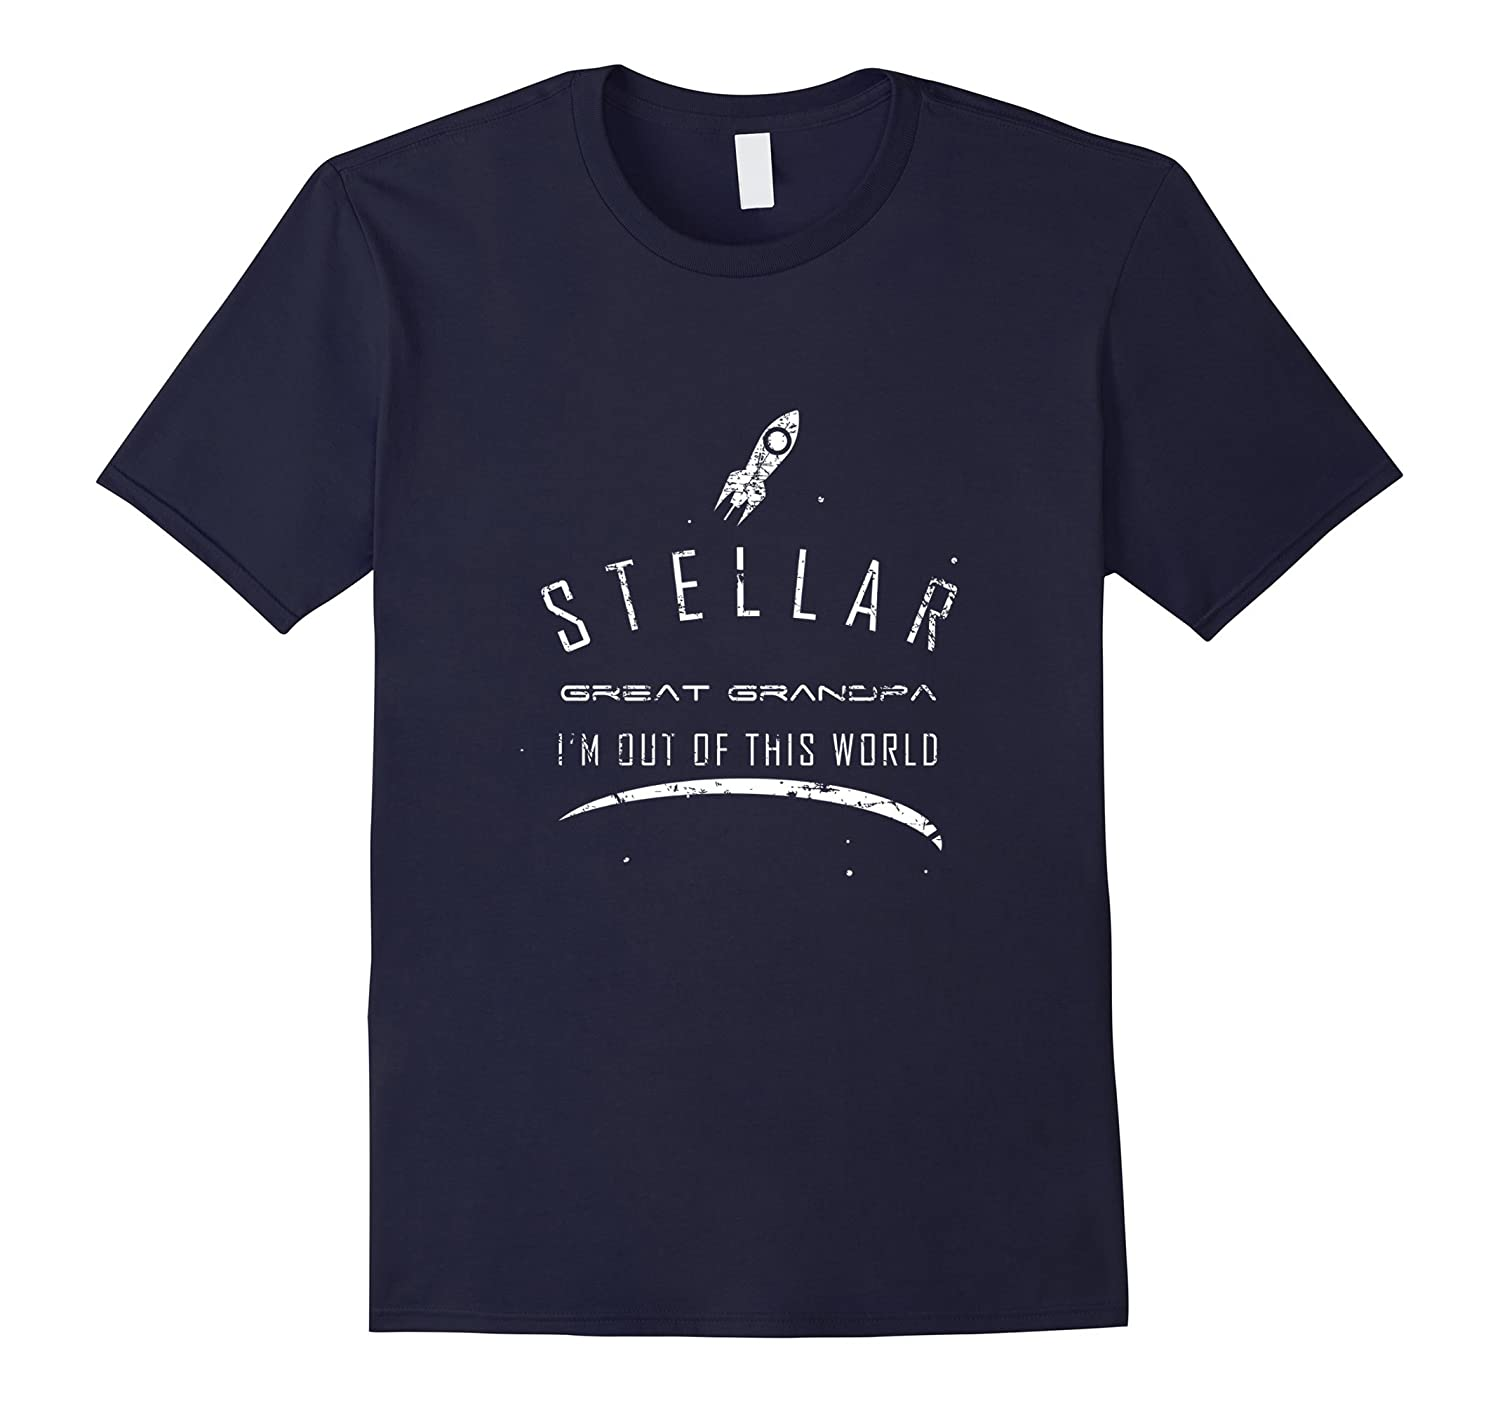 Mens Stellar Great Grandpa Shirt Cute Space Gift-Vaci